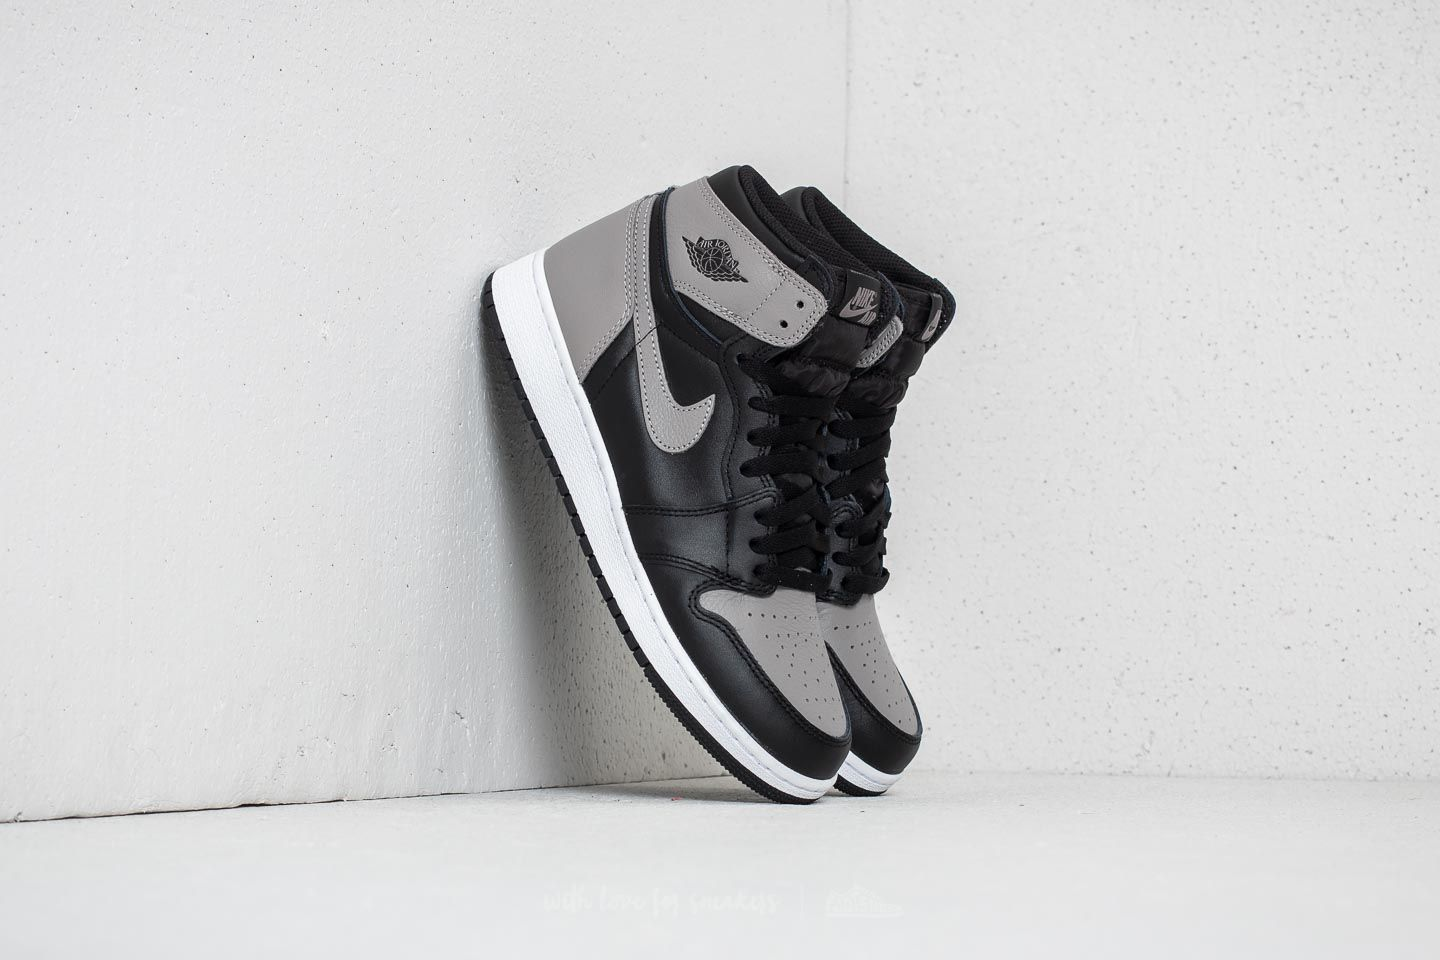 new product 53cf6 e8d48 Air Jordan 1 Retro High OG BG Black/ Medium Grey/ White | Footshop